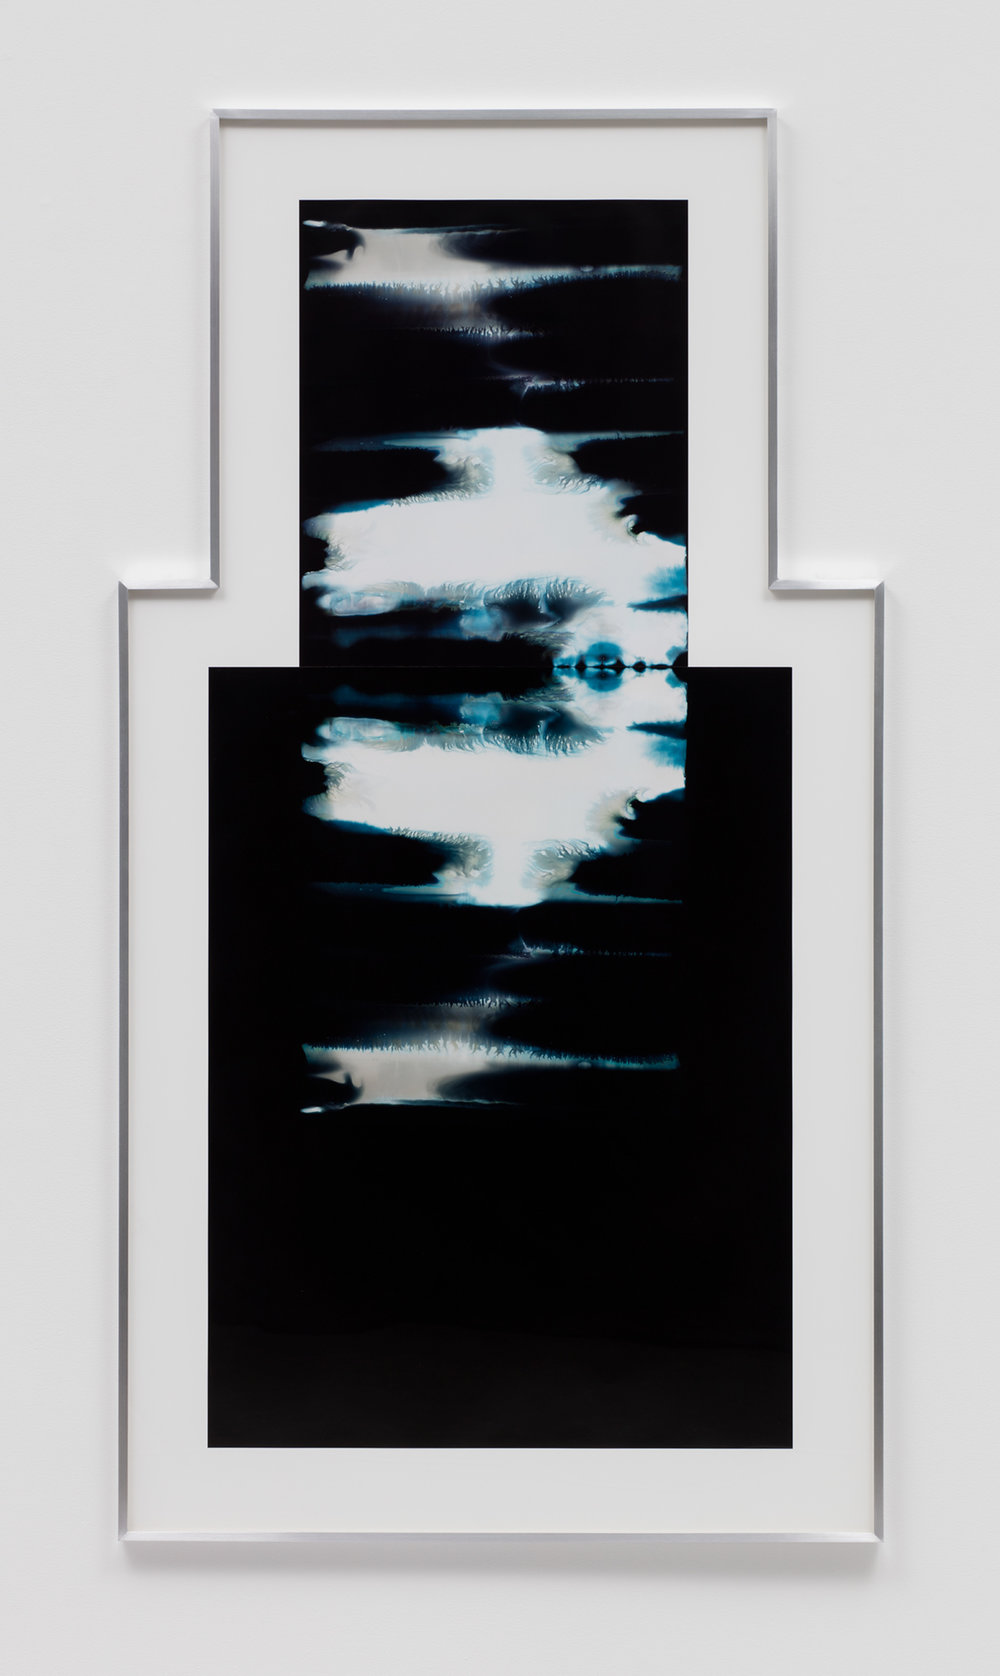 Asymmetrical Inverted RA4 Contact Print / Processor Stall (YMC: Los Angeles, California, January 16, 2018; Fujicolor Crystal Archive Super Type C, Em. No. 159-016 / Fujicolor Crystal Archive Super Type II, Em. No. 859809B217; Kodak Ektacolor RA Bleach-Fix and Replenisher; Kreonite KM IV 5225 RA4 Color Processor, Ser. No. 00092174; 01518)   2018  Color photographic paper  73 x 39 inches   Asymmetrical Inverted RA4 Contact Prints, 2018–    Equivalents, 2018